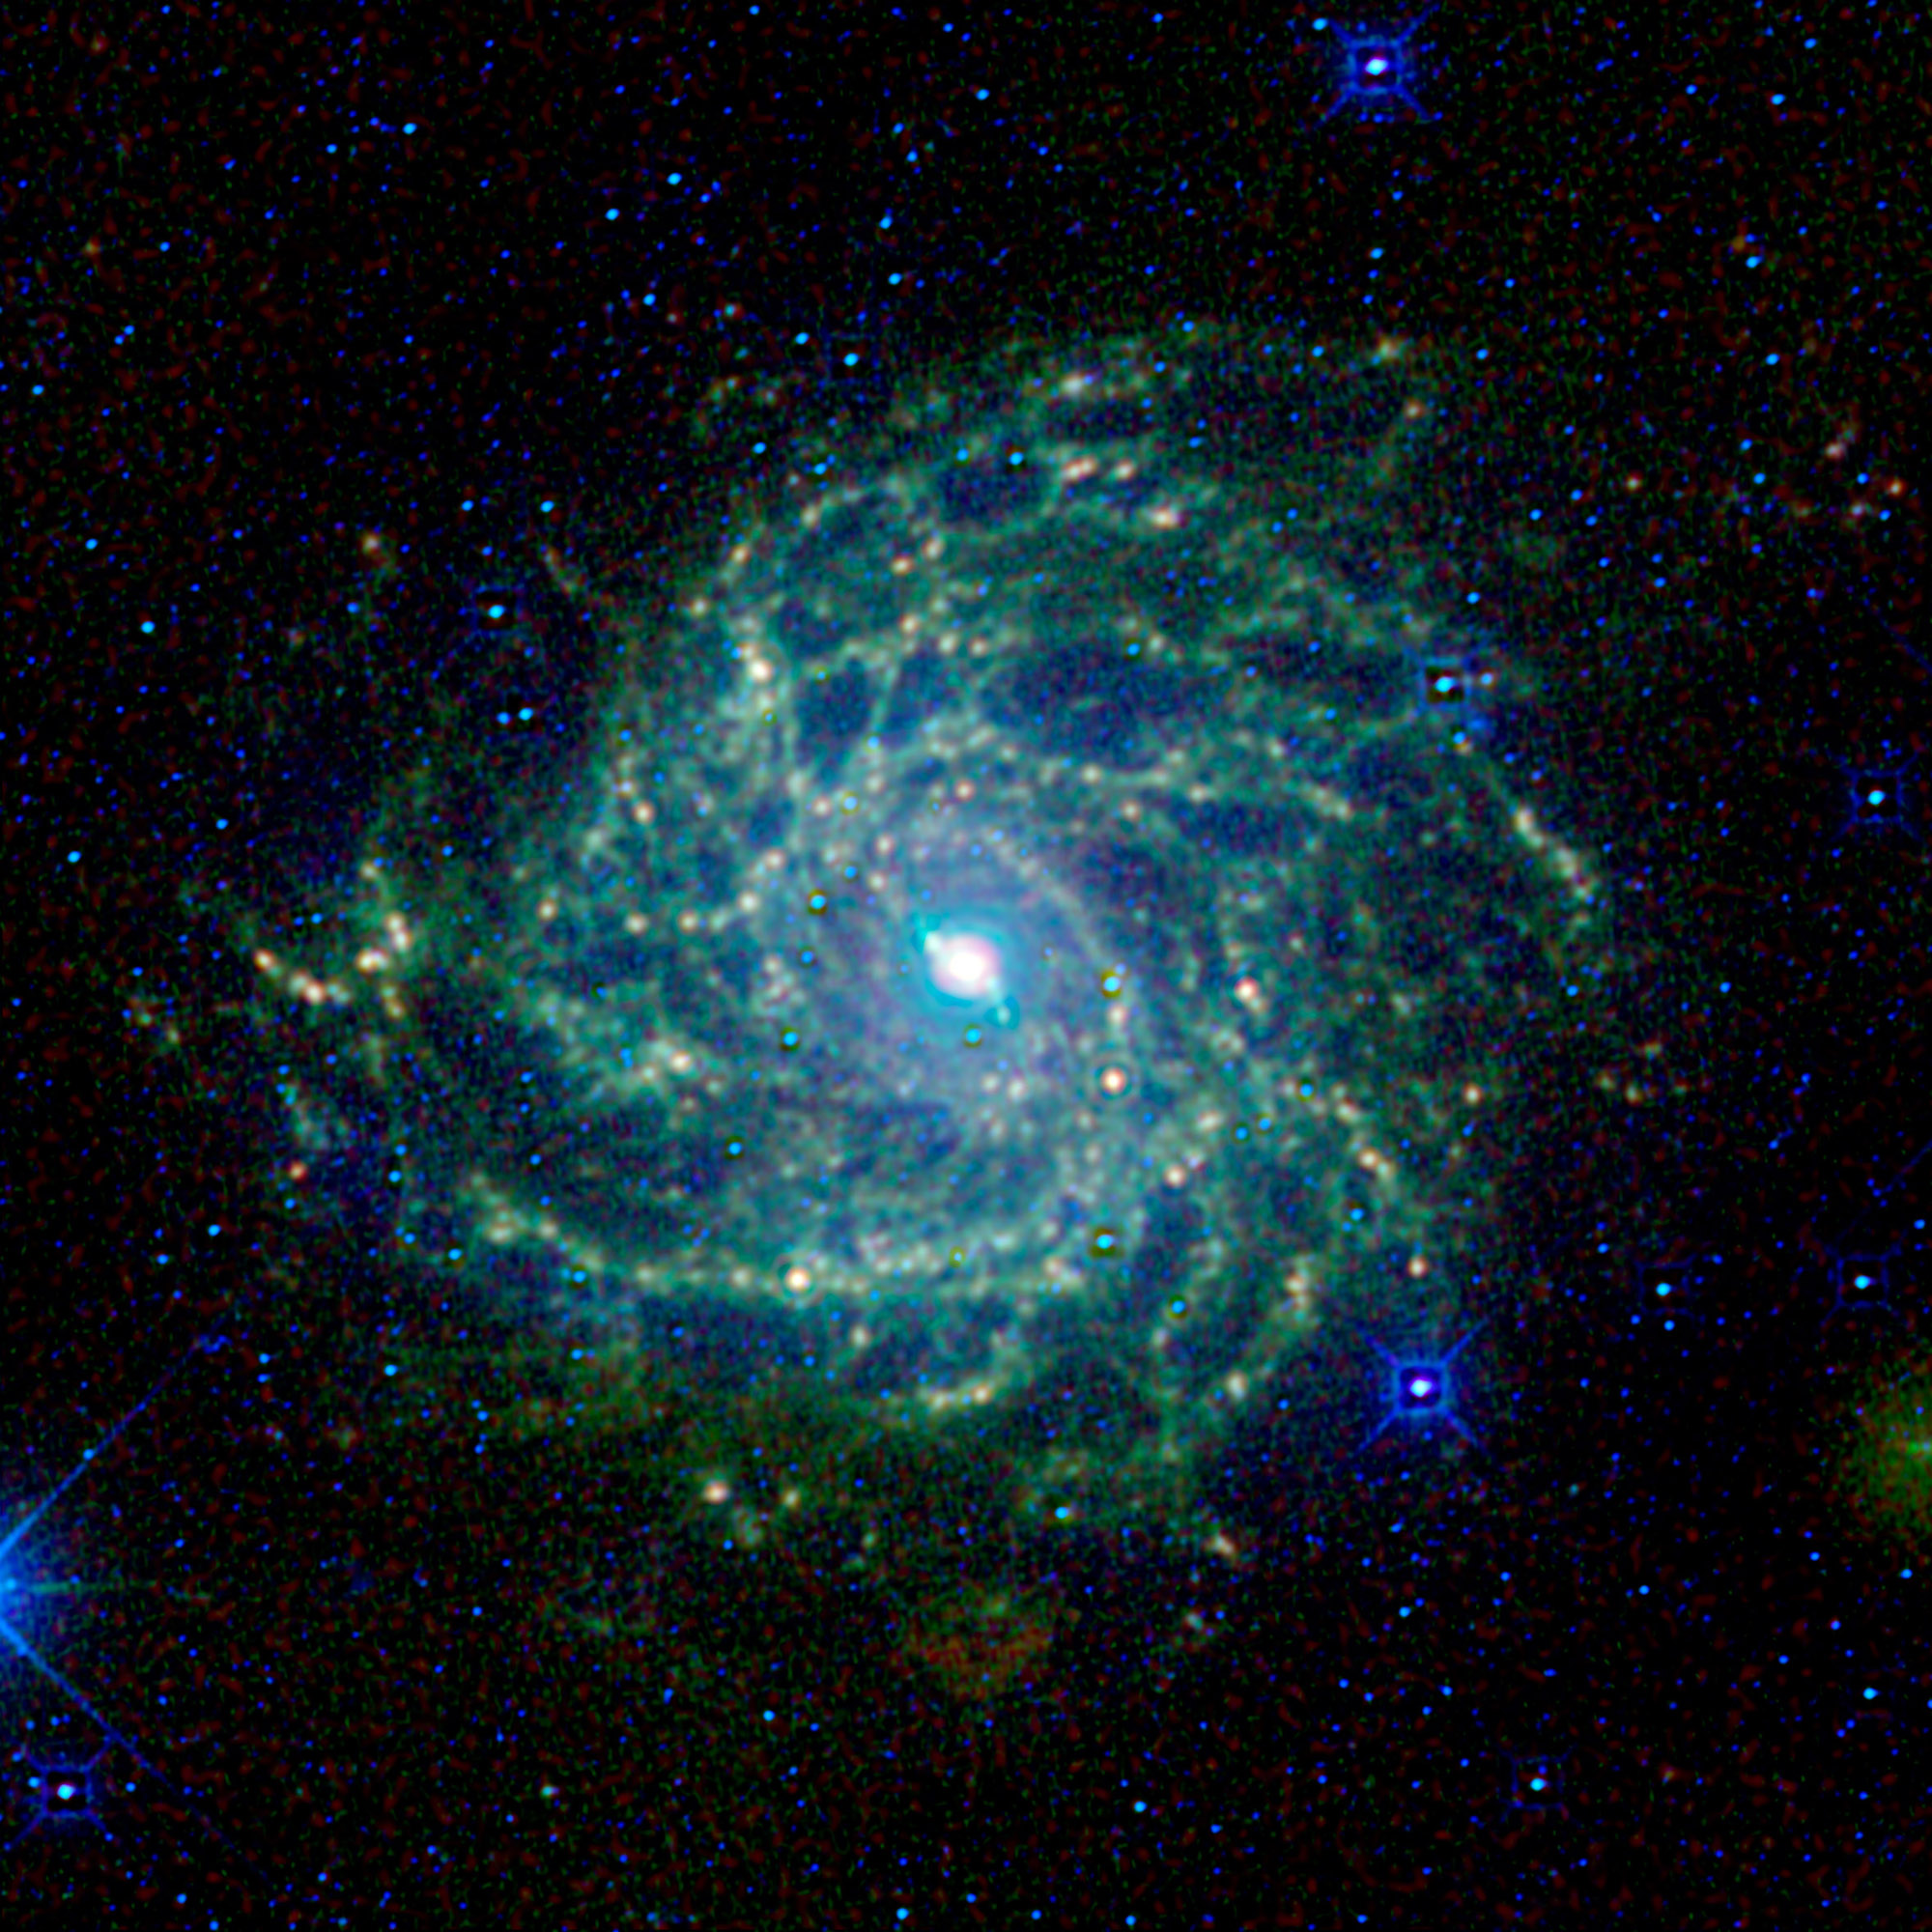 Sometimes called the Hidden Galaxy, this spiral beauty is shrouded behind our own galaxy, the Milky Way.